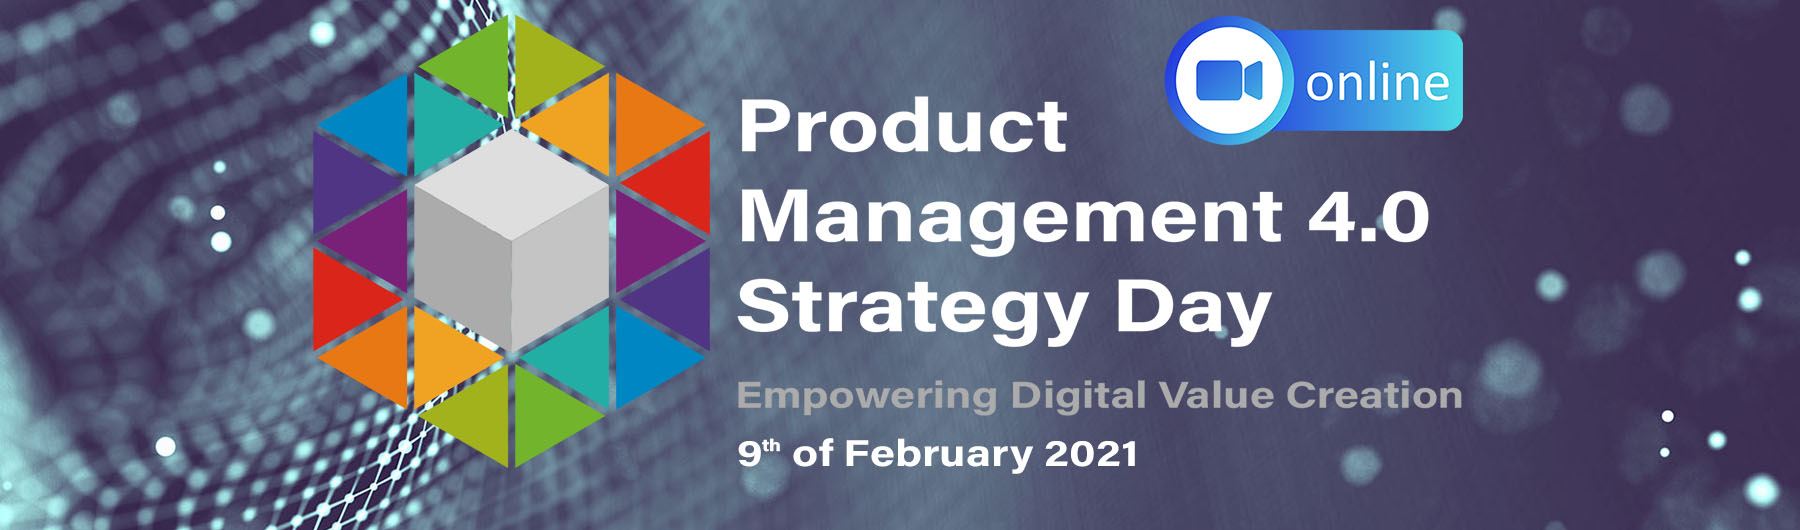 Product Management 4.0 Strategy Day Online